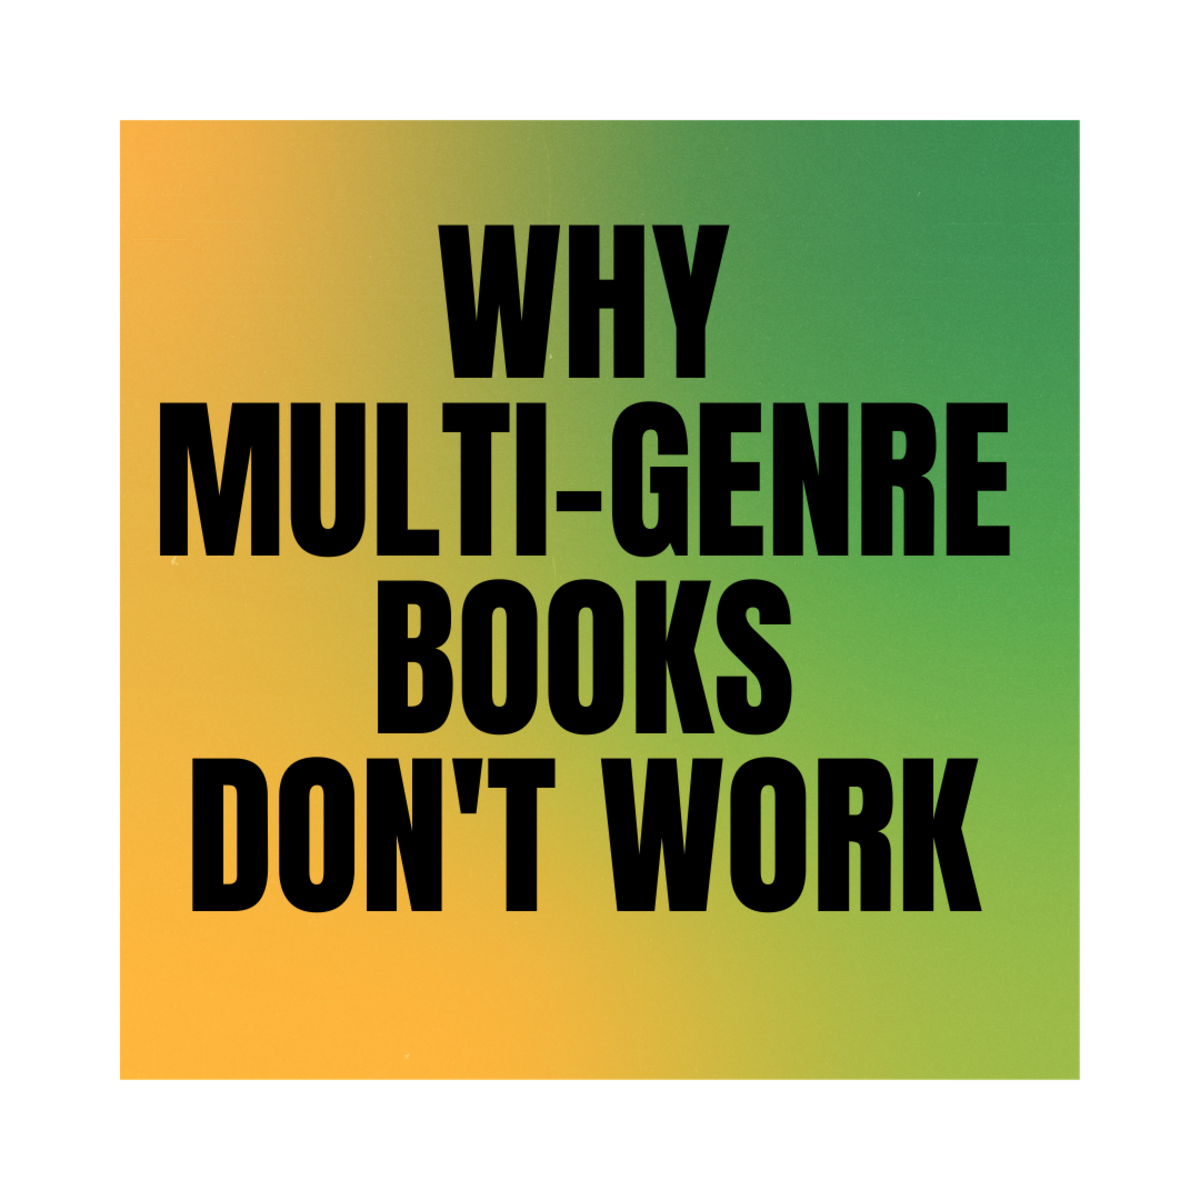 Why Multi-Genre Books Don't Work